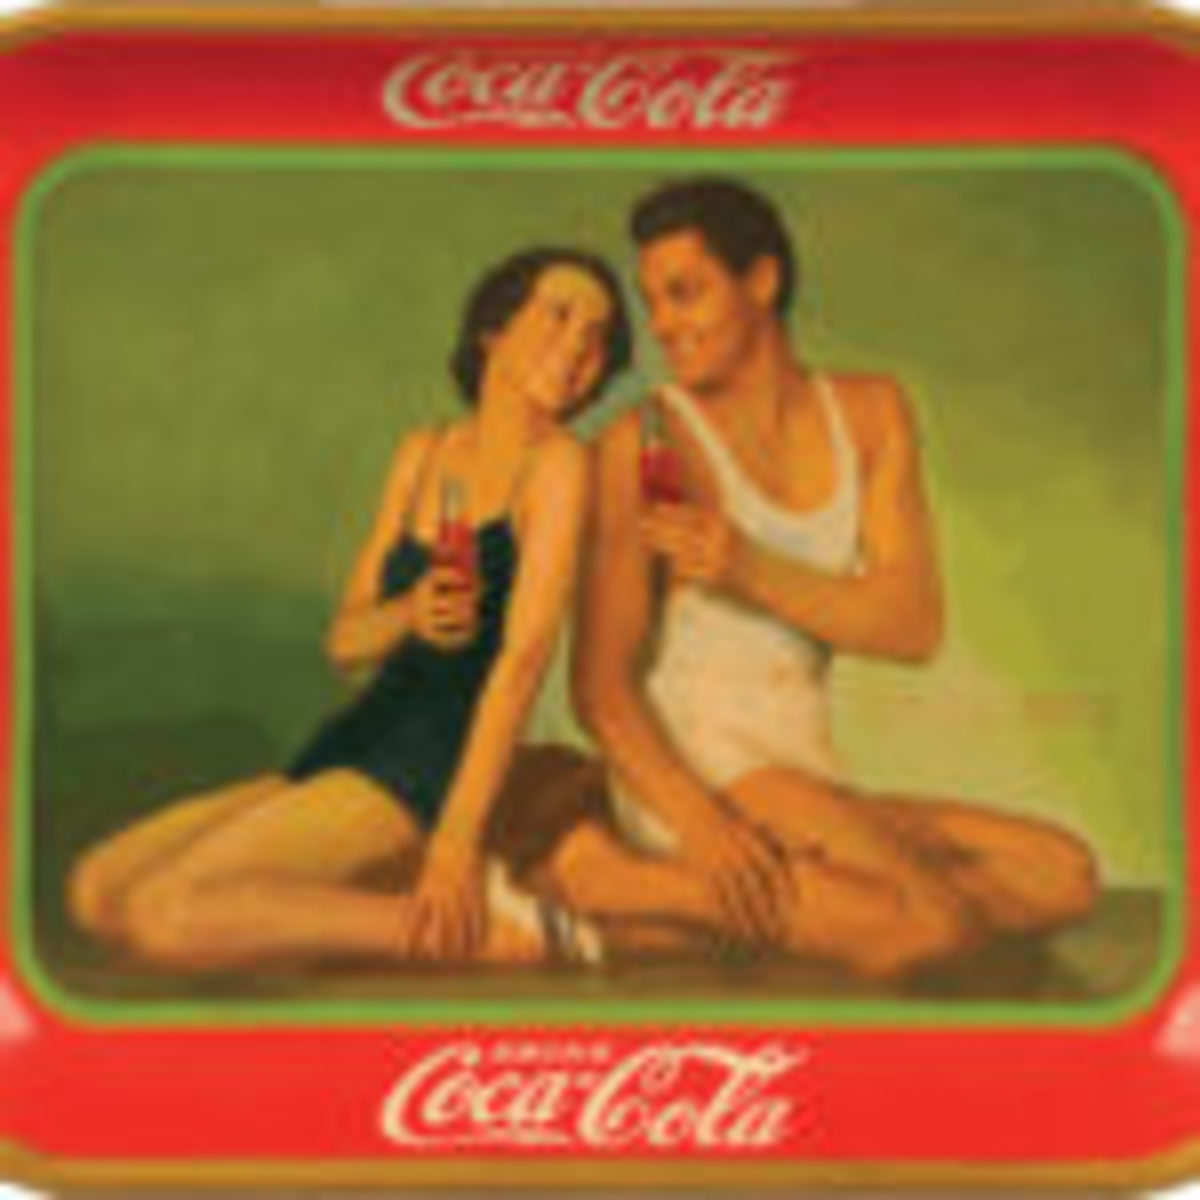 Figure 3: Original Coca-Cola tray. From the Martin Guide to Coca-Cola Memorabilia (used with permission).